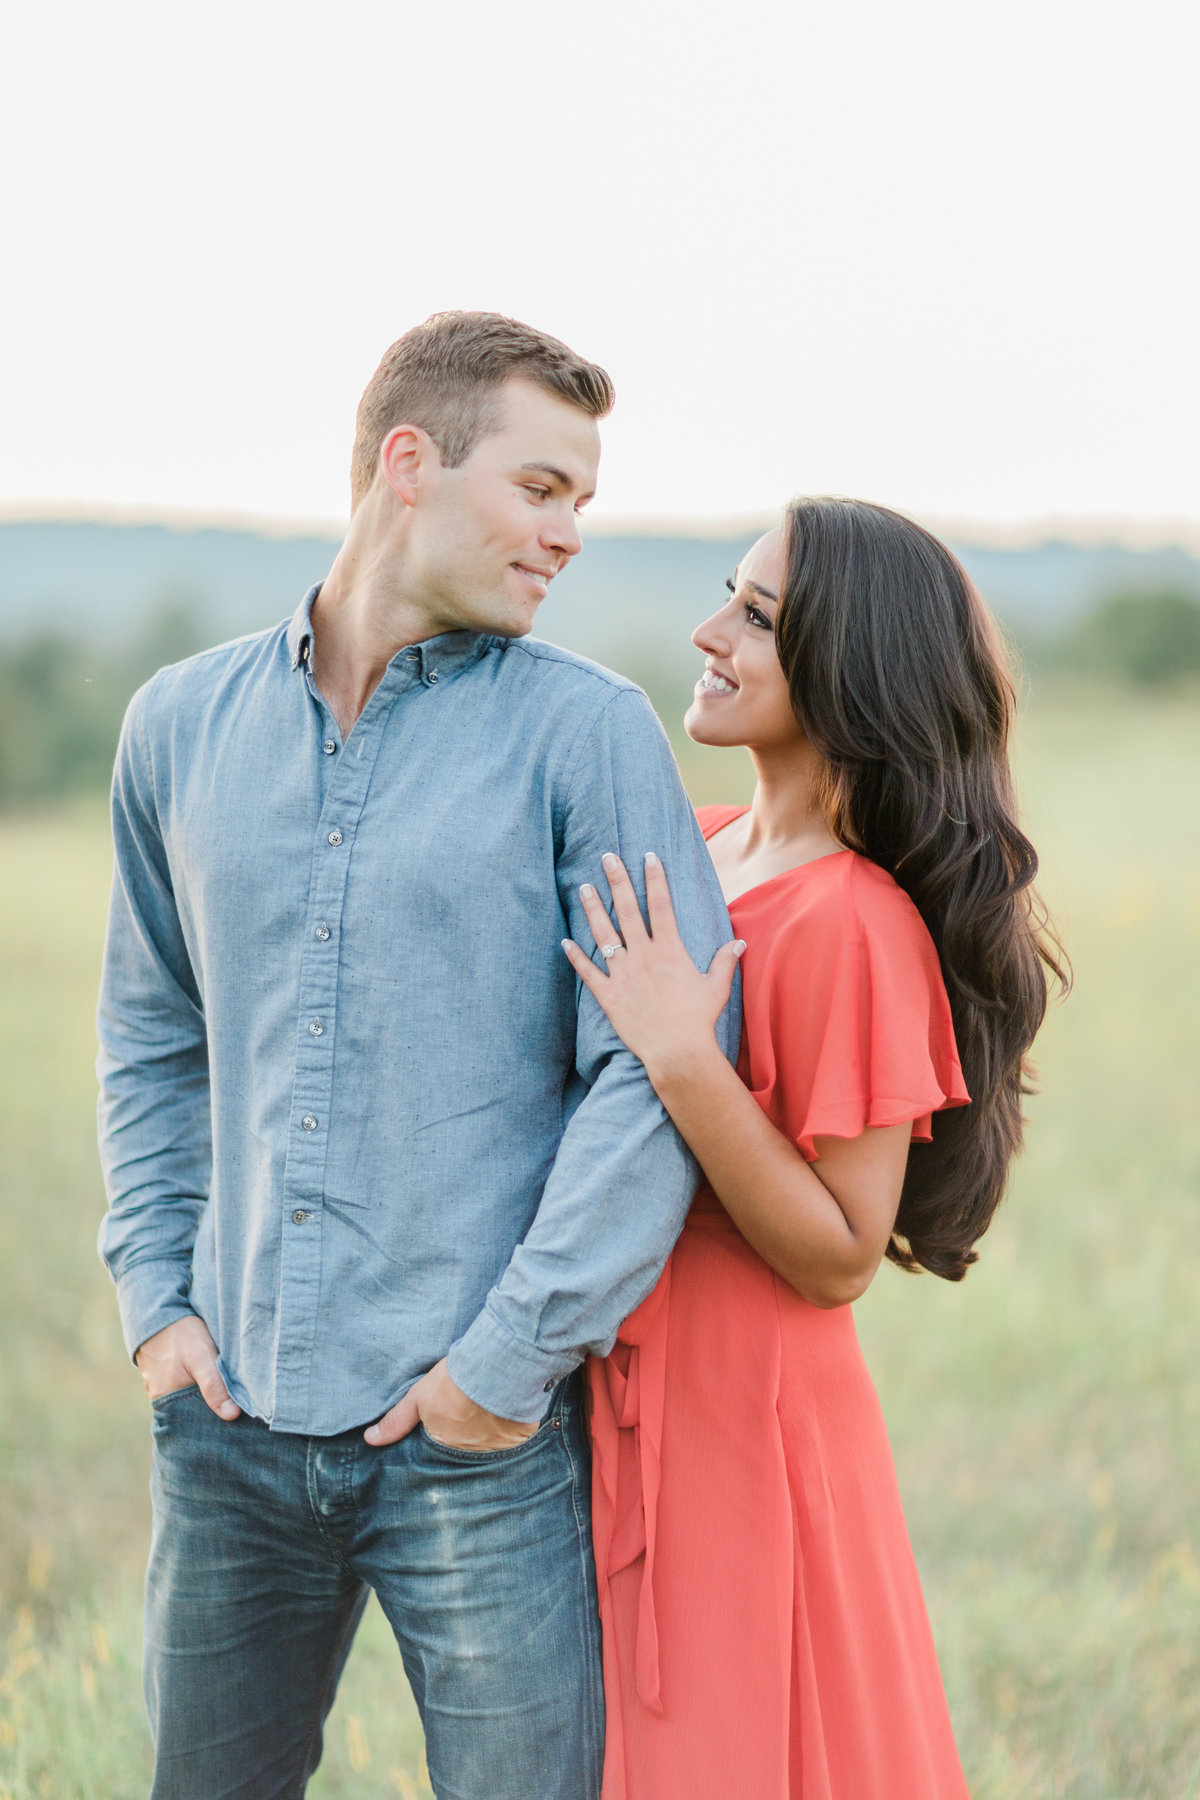 SkyMeadowsPark_Virginia_Engagement_Session_AngelikaJohnsPhotography-0661